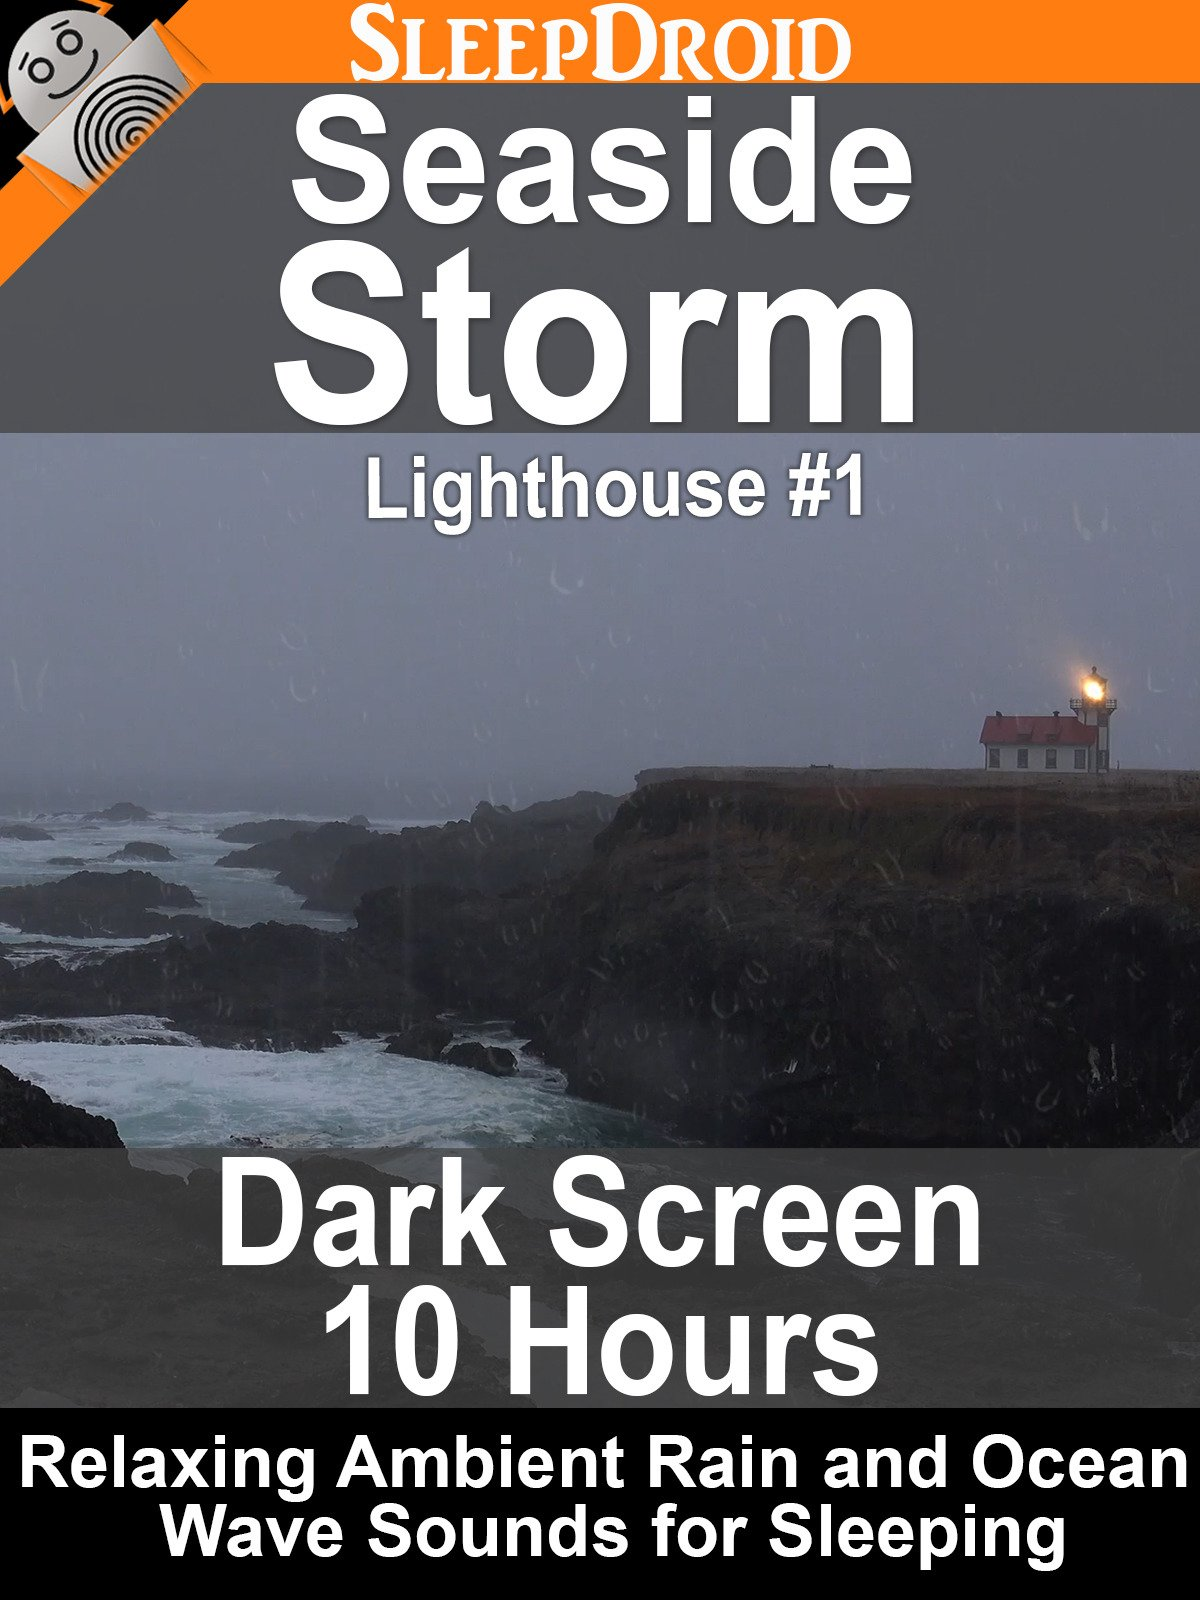 Seaside Storm Lighthouse #1 Dark Screen 10 Hours: Relaxing Ambient Rain and Ocean Wave Sounds for Sleeping